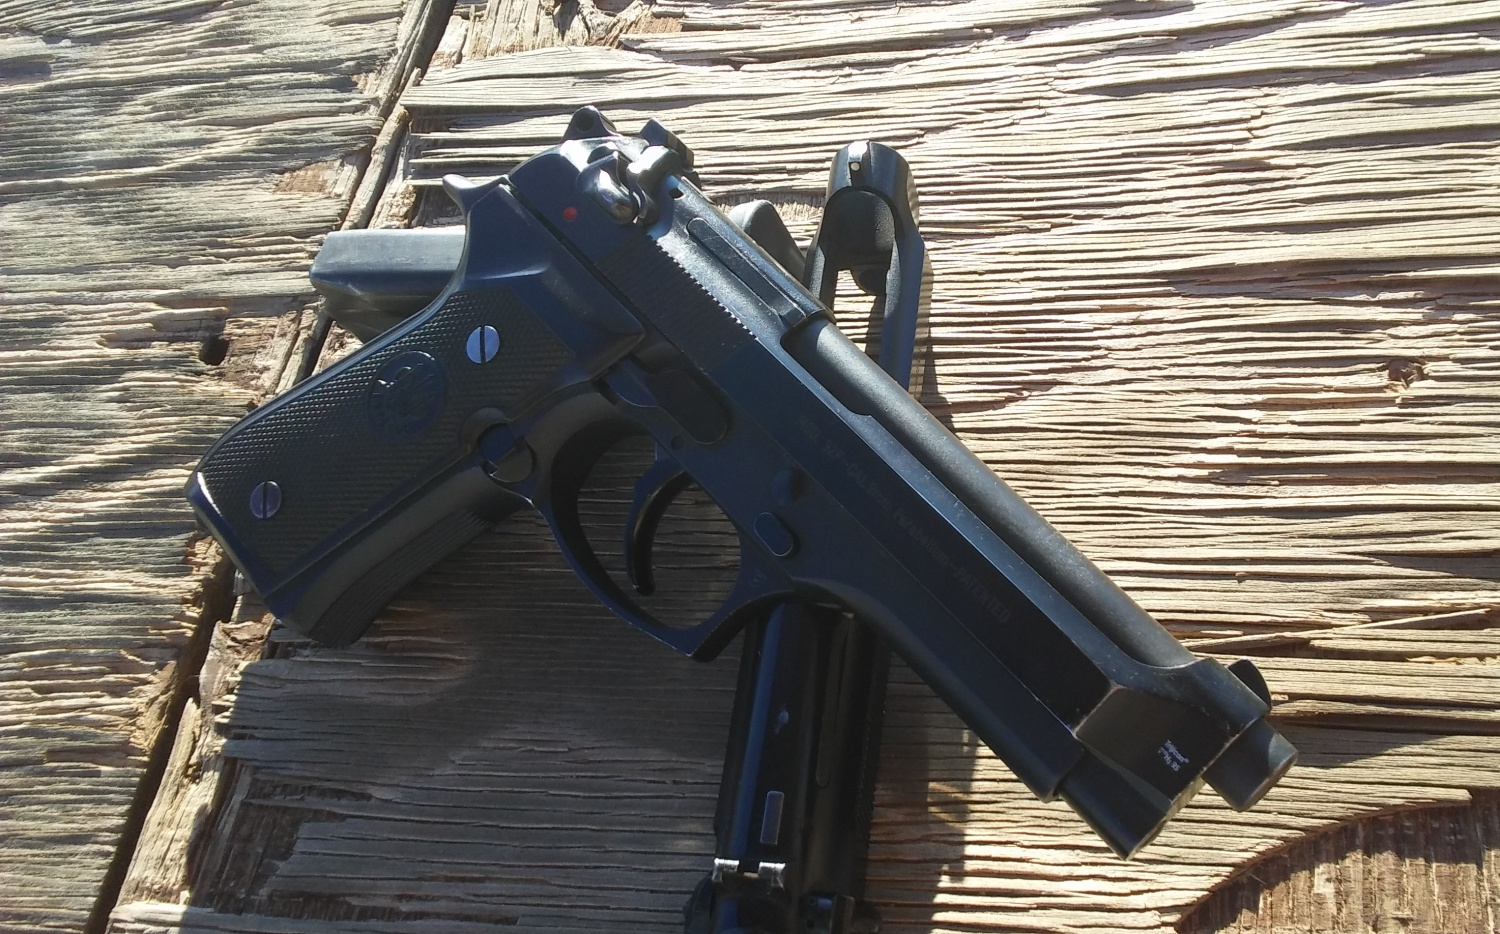 M92 right side